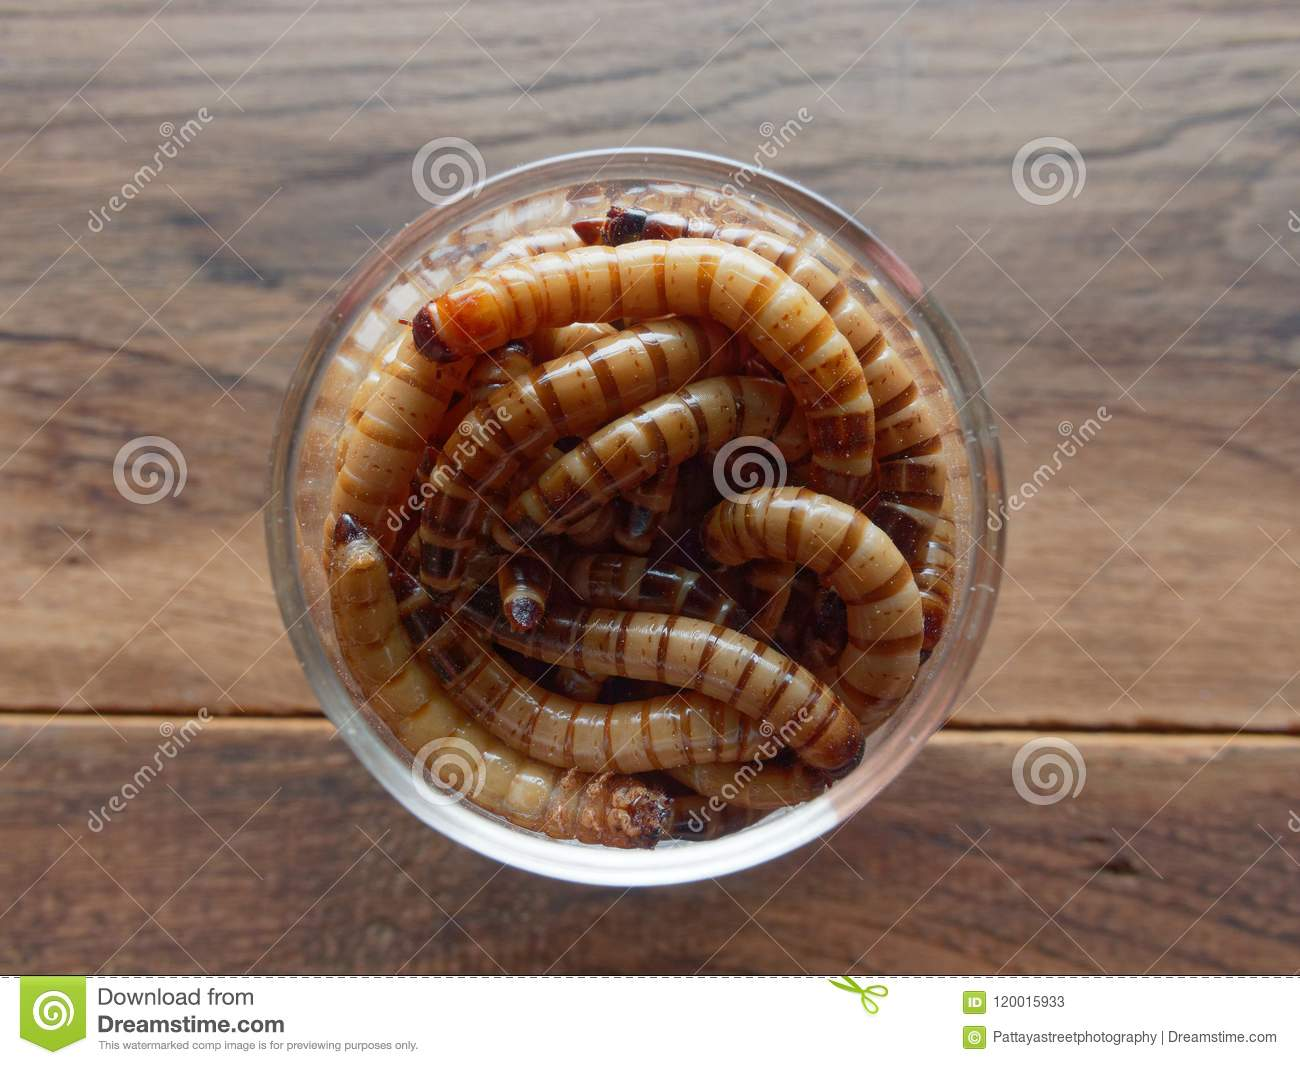 A Group Of Super Or Giant Worms Crawl Inside Small Brandy